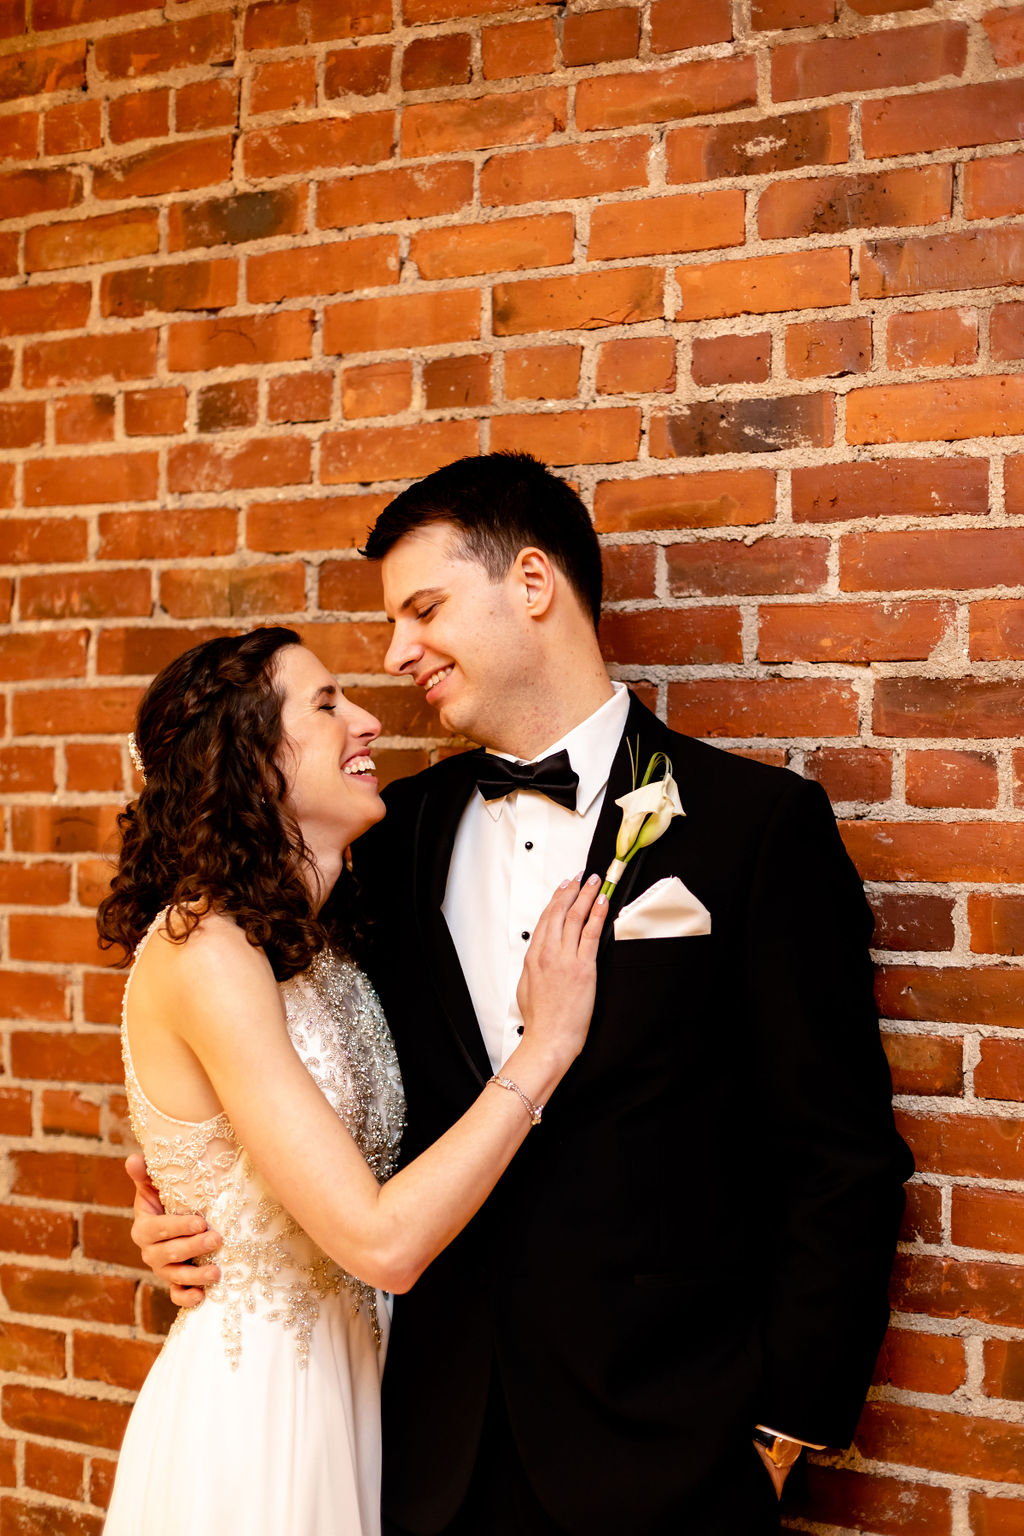 Bride and groom against a brick wall - Pearl weddings & Events